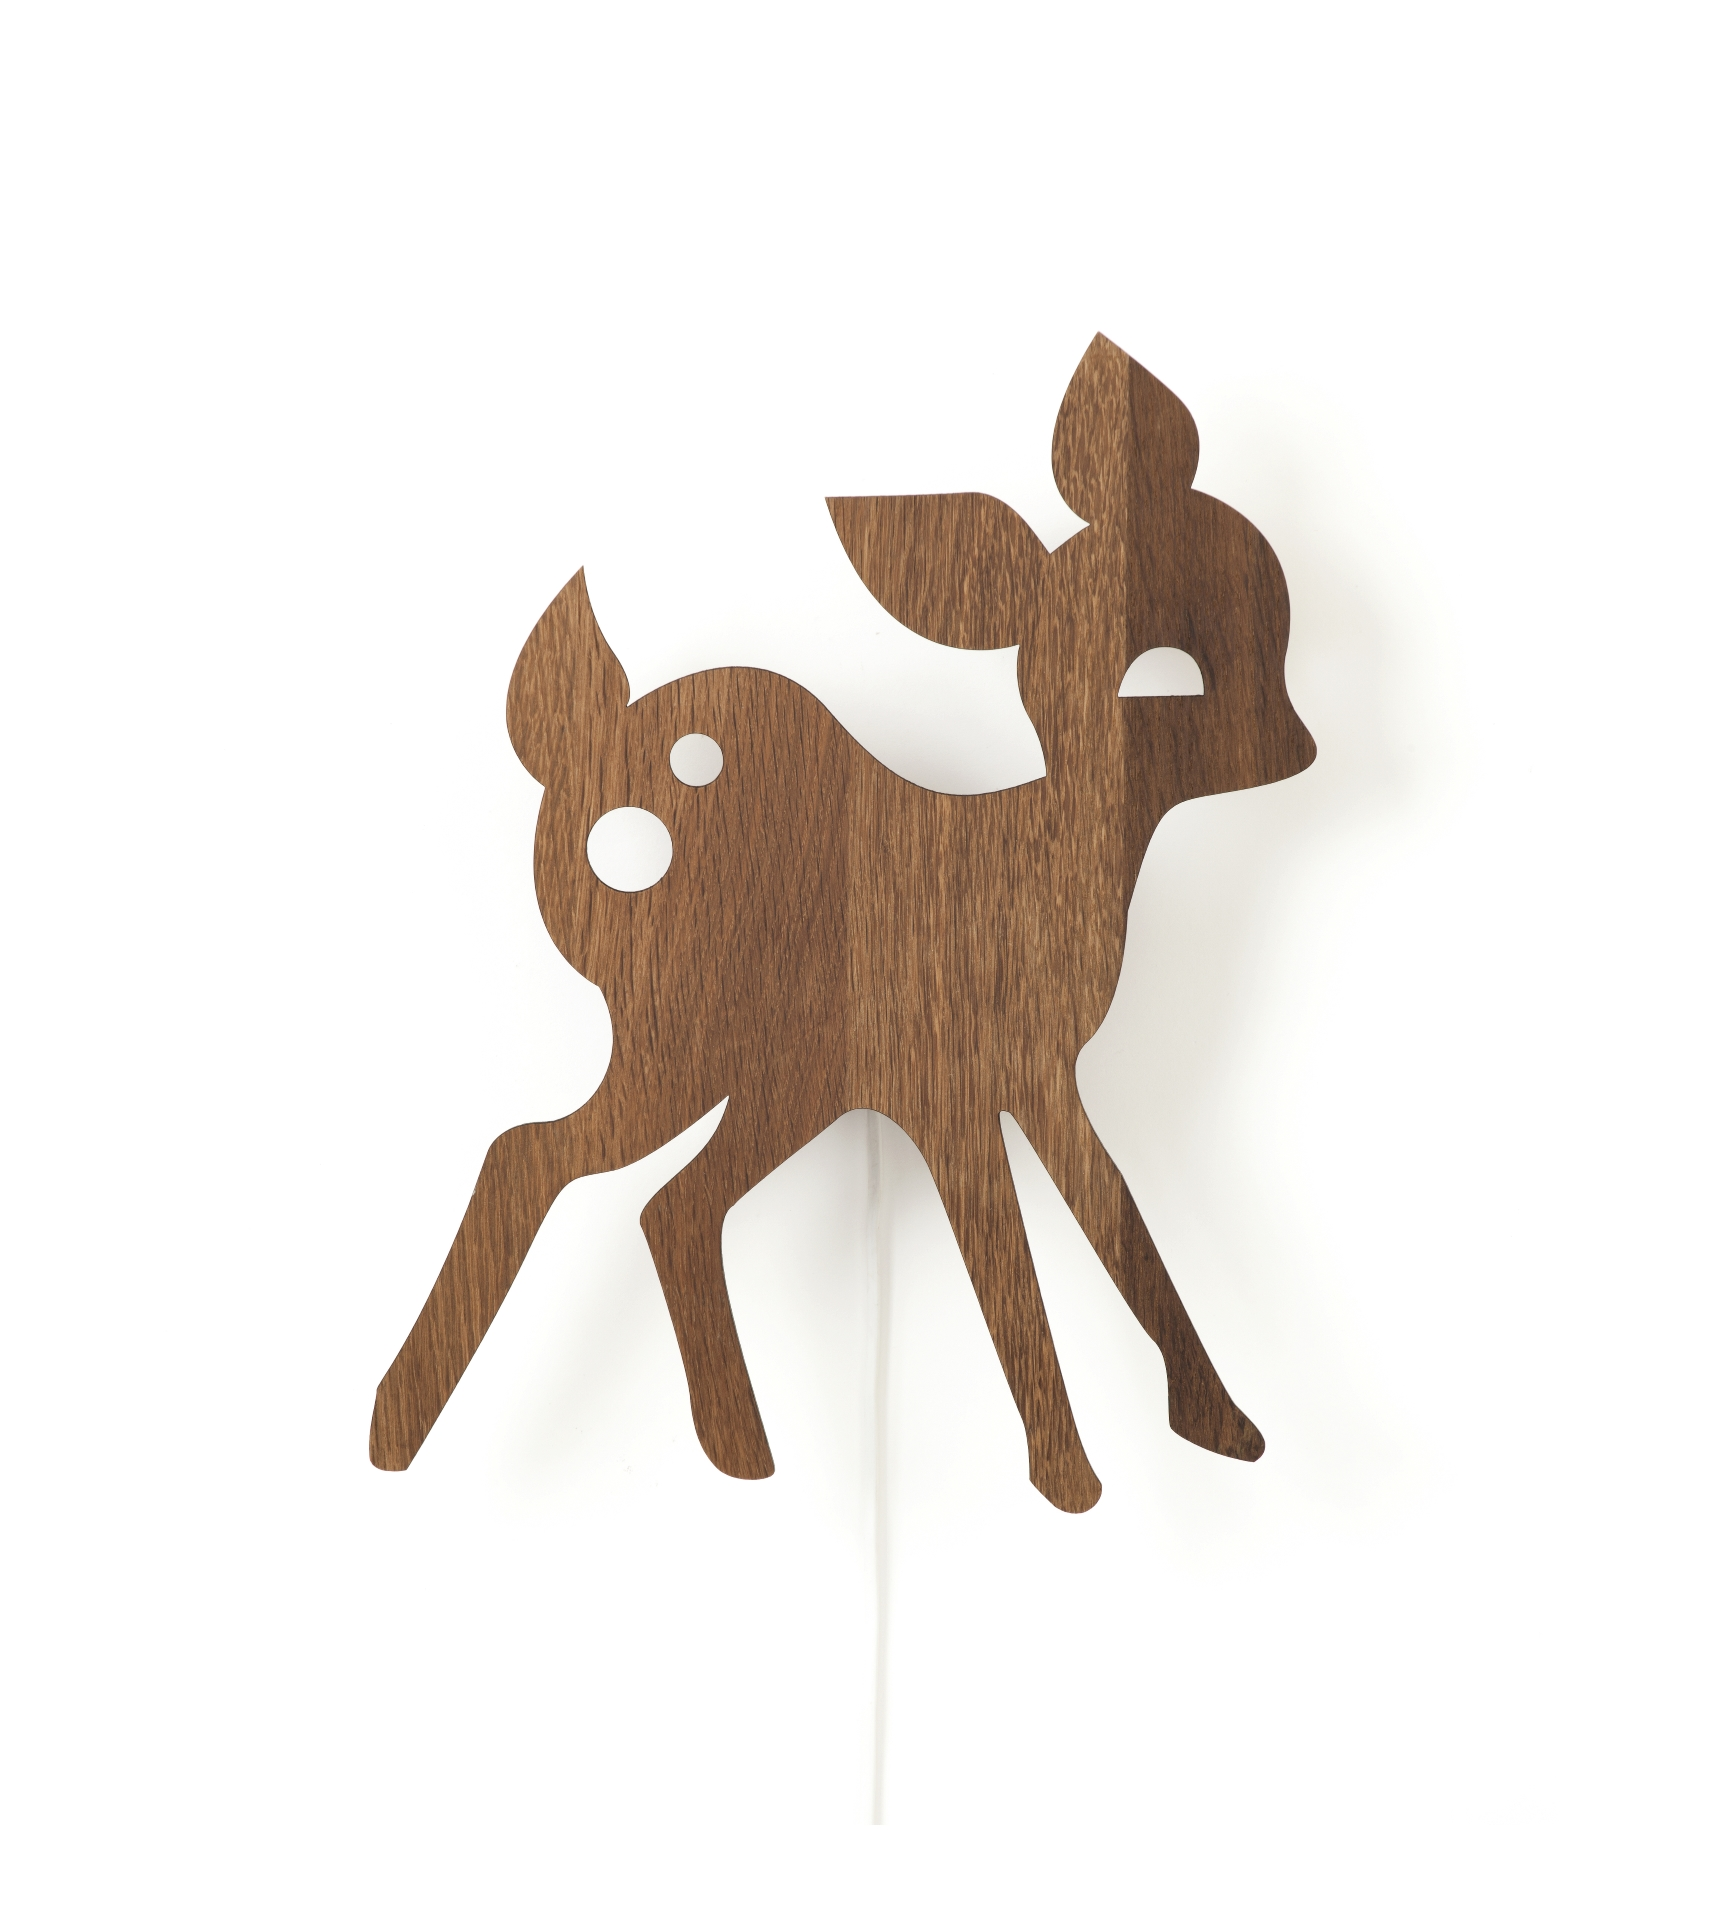 Barnlampa My Deer smoked oak, Ferm living